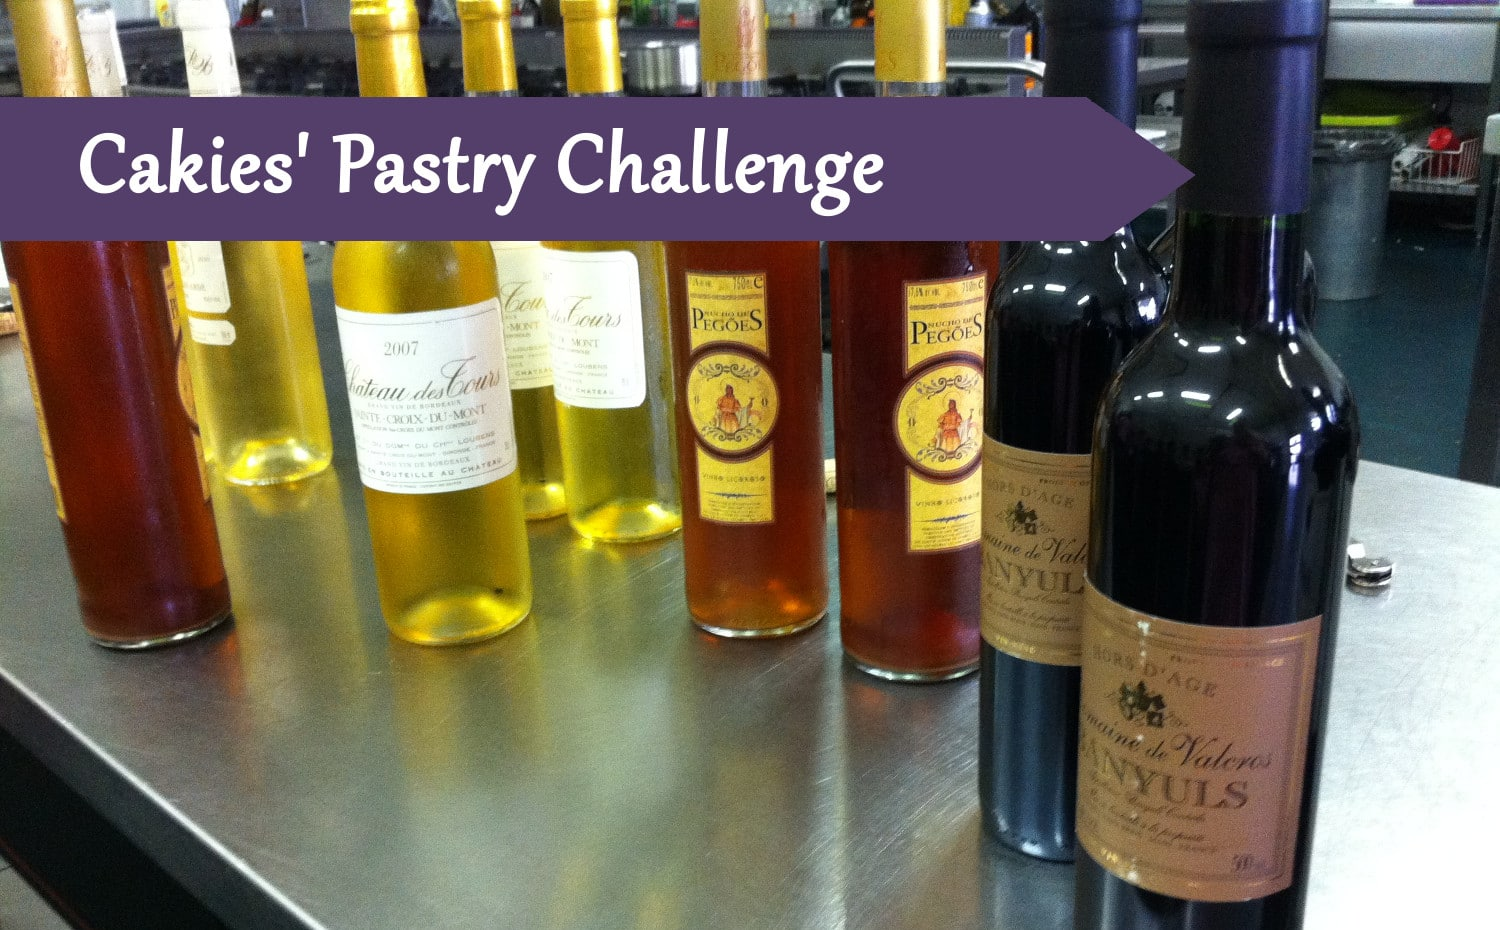 Pastry Course Day 32: Ice and Wine and Food tasting with Robert Verweij